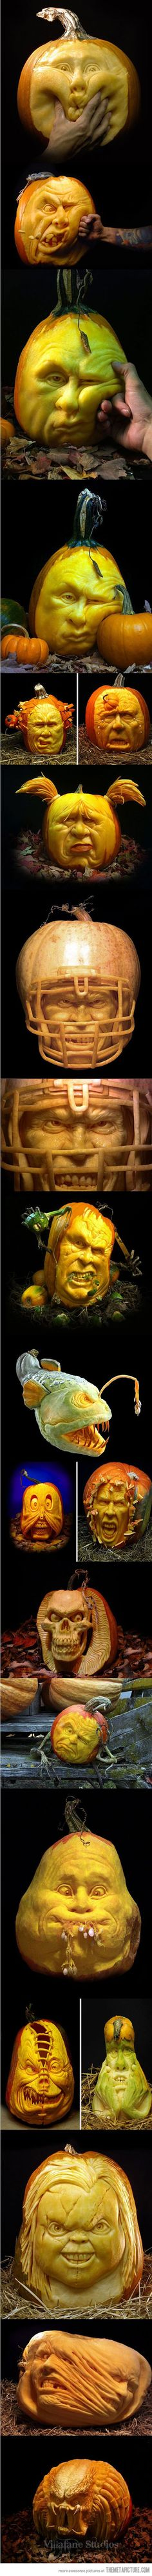 Fall is coming....best time of the year.  Go to wow pumpkin carving and get tattoos to carve pumpkins like these.